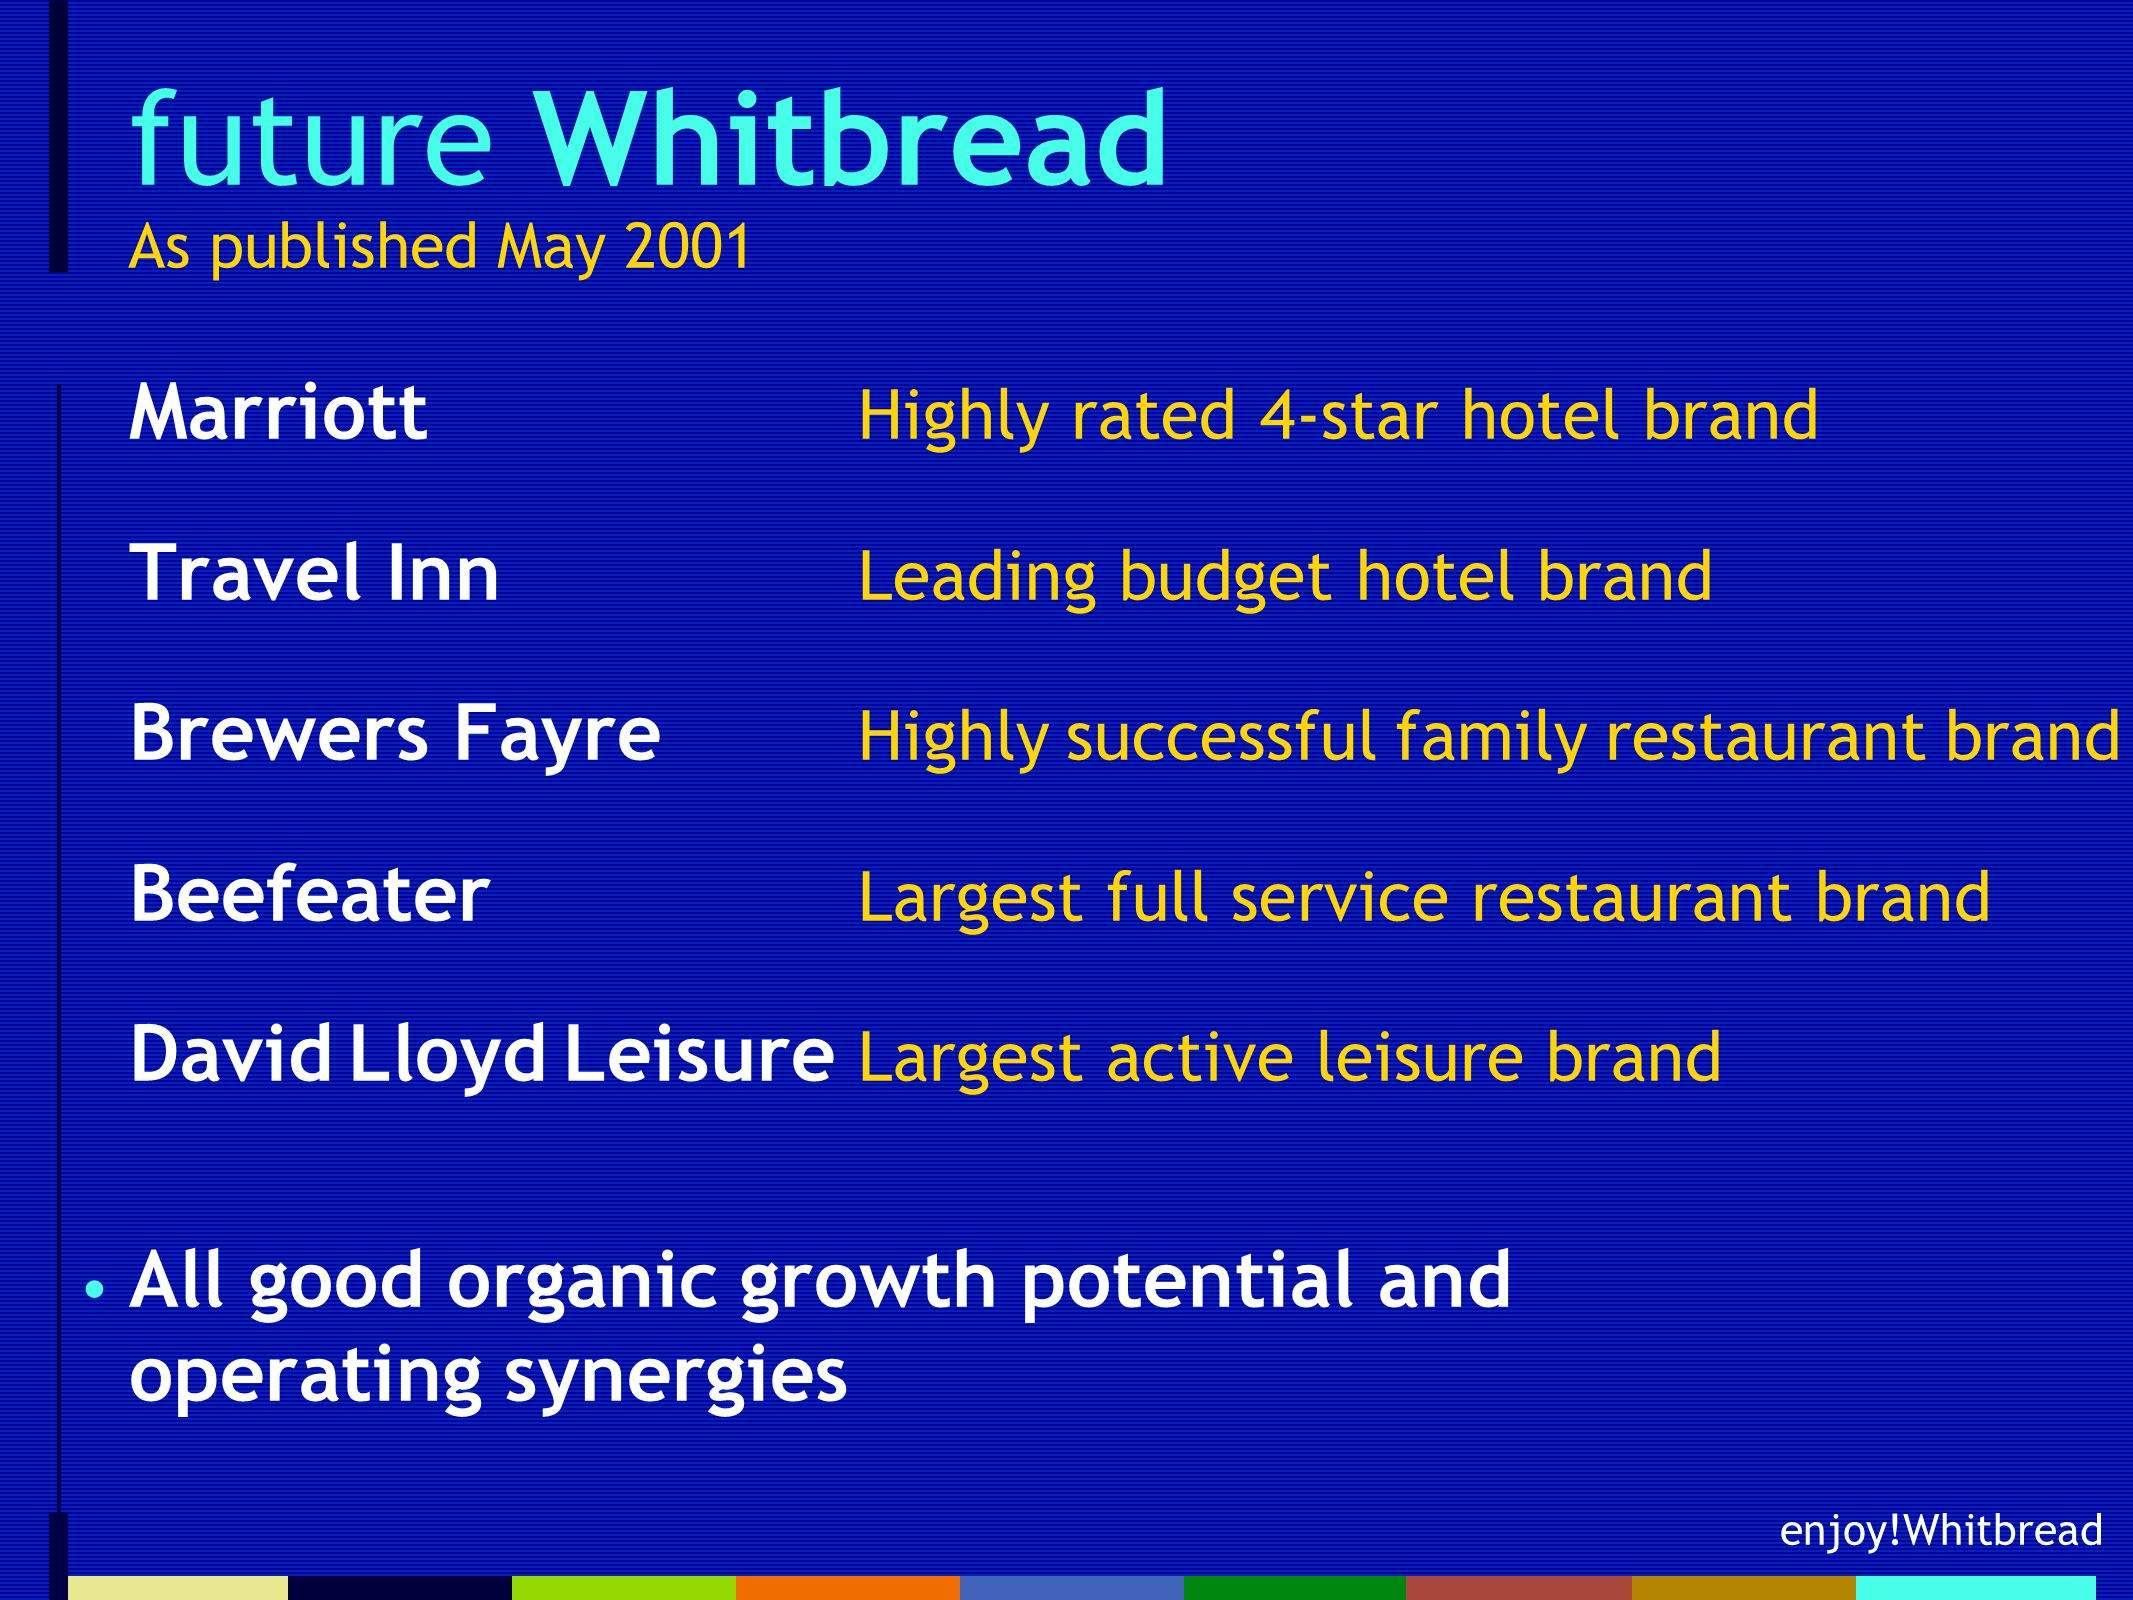 enjoy!Whitbread Marriott Highly rated 4-star hotel brand Travel Inn Leading budget hotel brand Brewers Fayre Highly successful family restaurant brand Beefeater Largest full service restaurant brand David Lloyd Leisure Largest active leisure brand All good organic growth potential and operating synergies future Whitbread As published May 2001